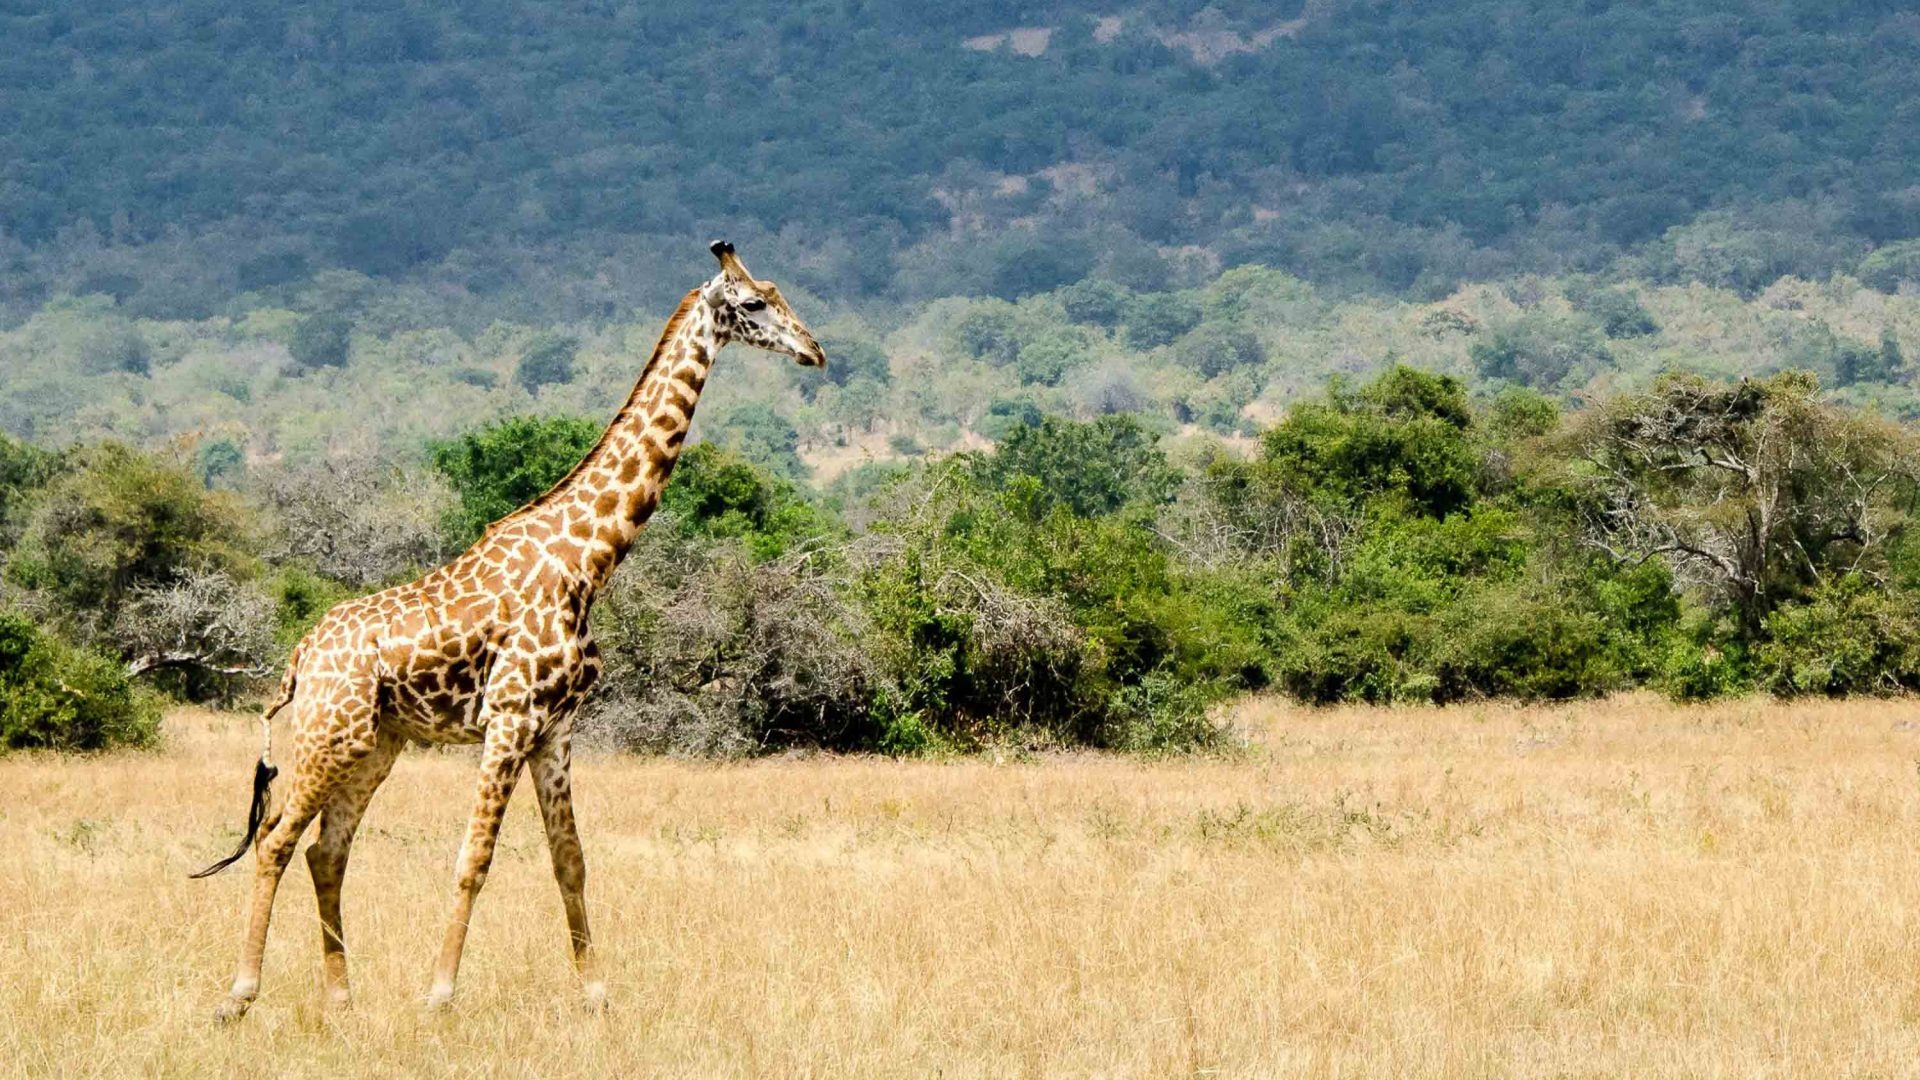 A giraffe at Magashi Camp in Rwanda.